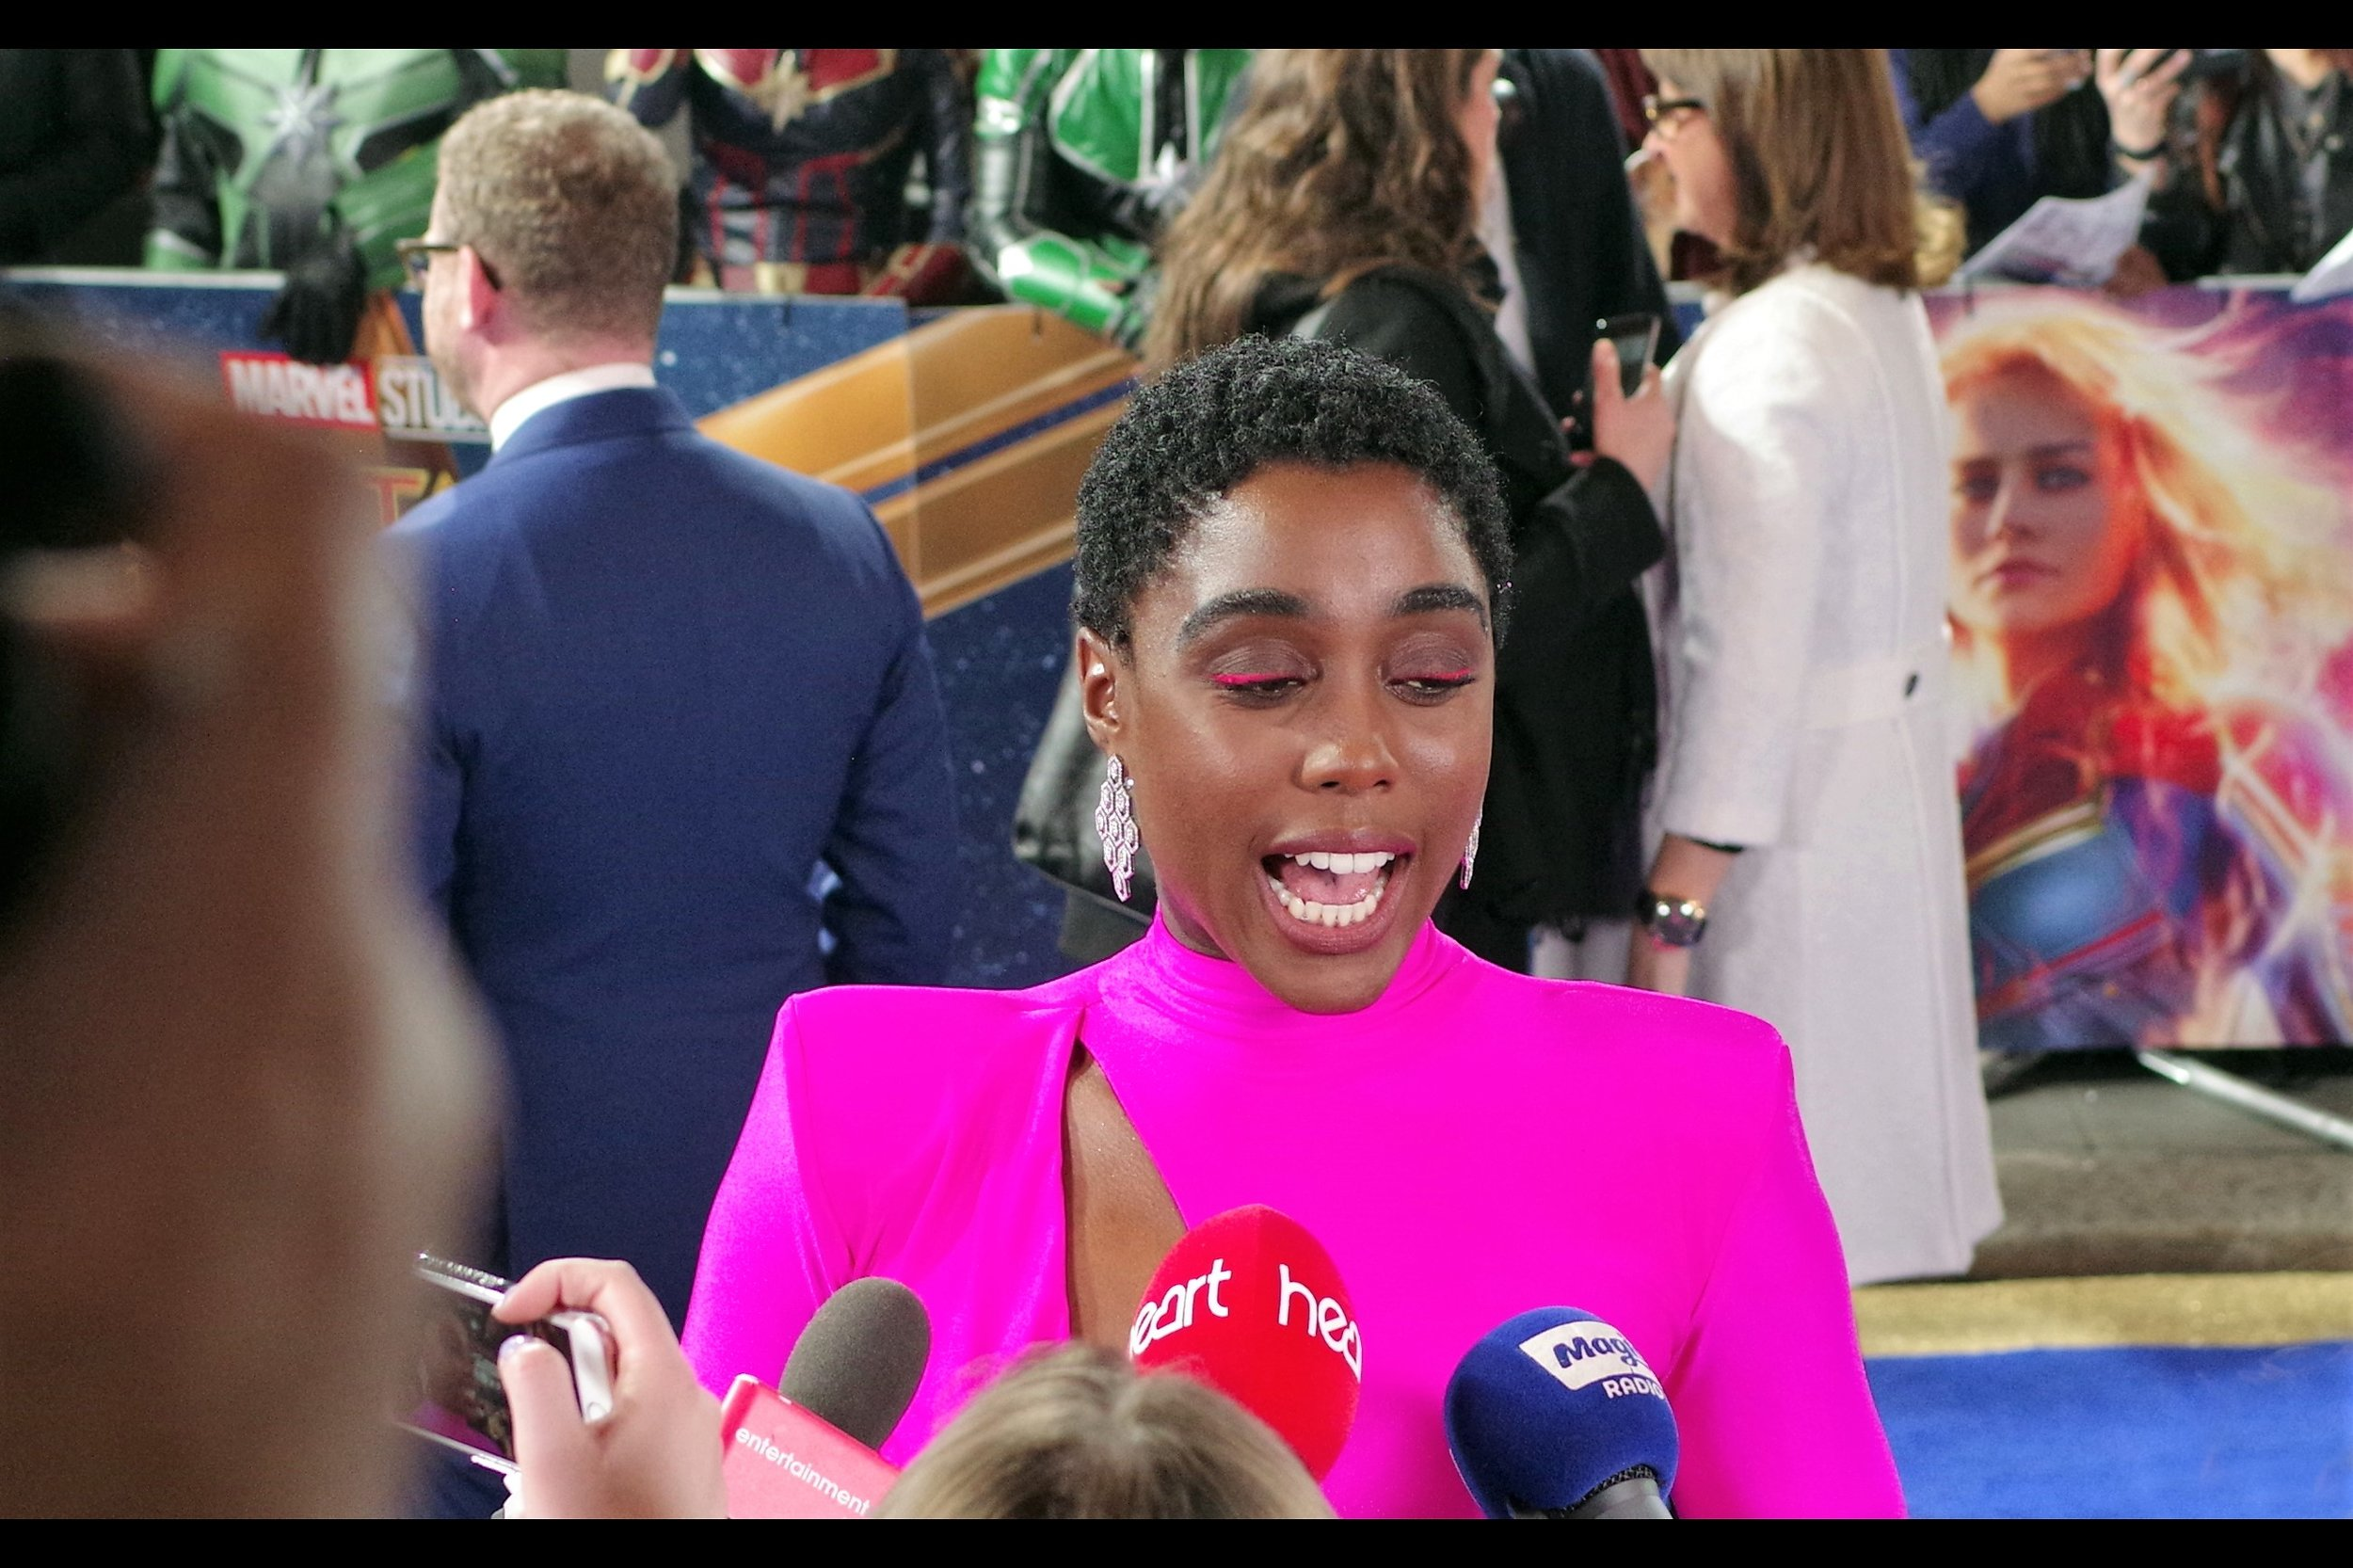 """People keep asking me about the colour of the dress and then looking away. What's that all about?""  - Lashana Lynch has been in a lot of TV series I haven't seen, and was in the movie ""Fast Girls"" whose premiere in 2012 I sadly missed. But I have now seen the dress she's wearing here, so I know what people are talking about when they mention it."